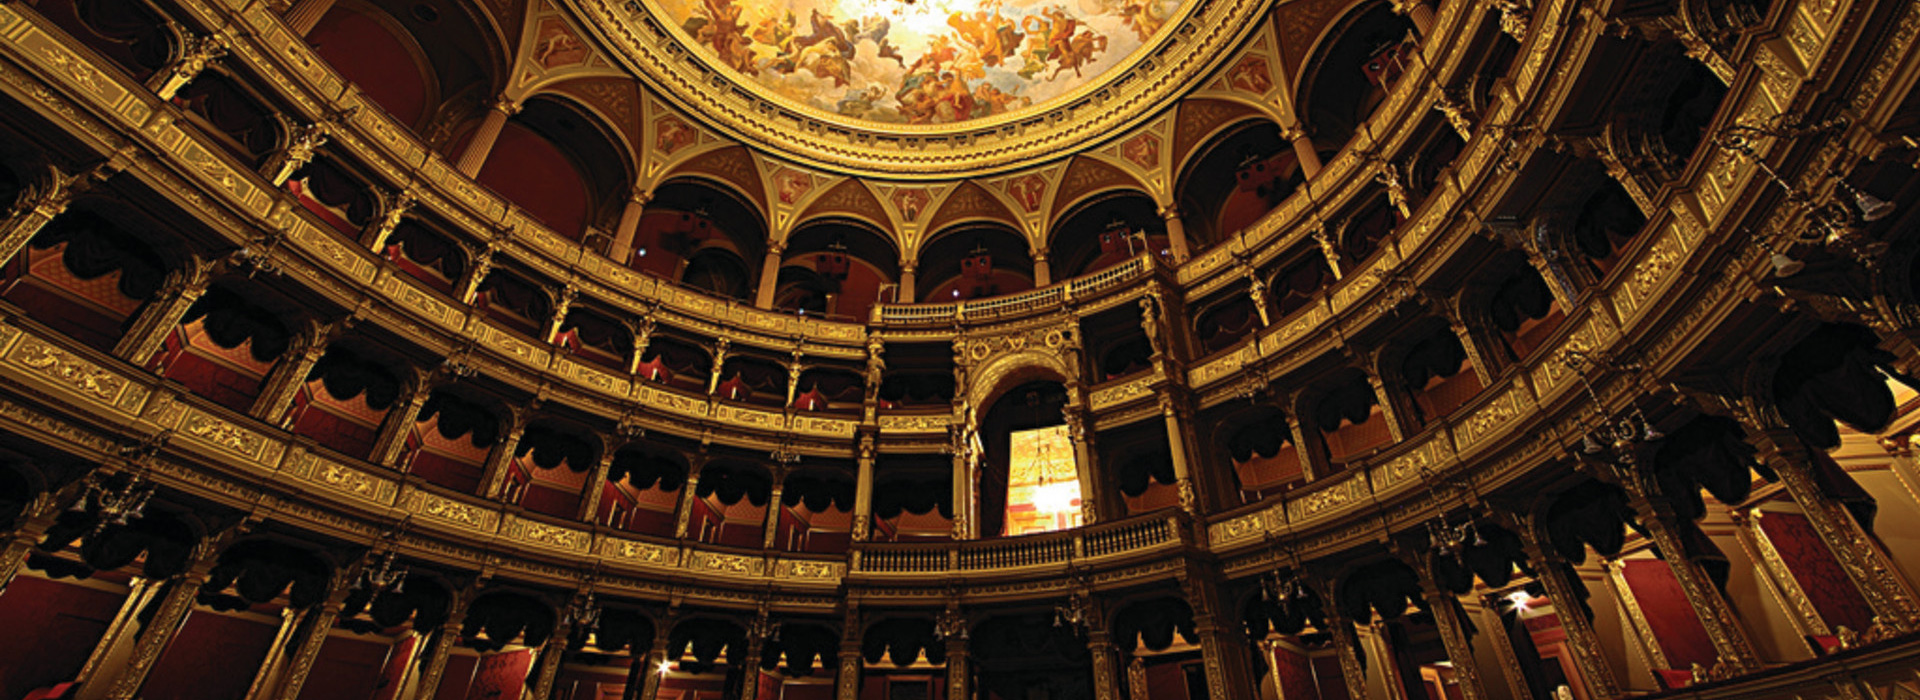 Budapest Sightseeing Tour and visiting the State Opera House